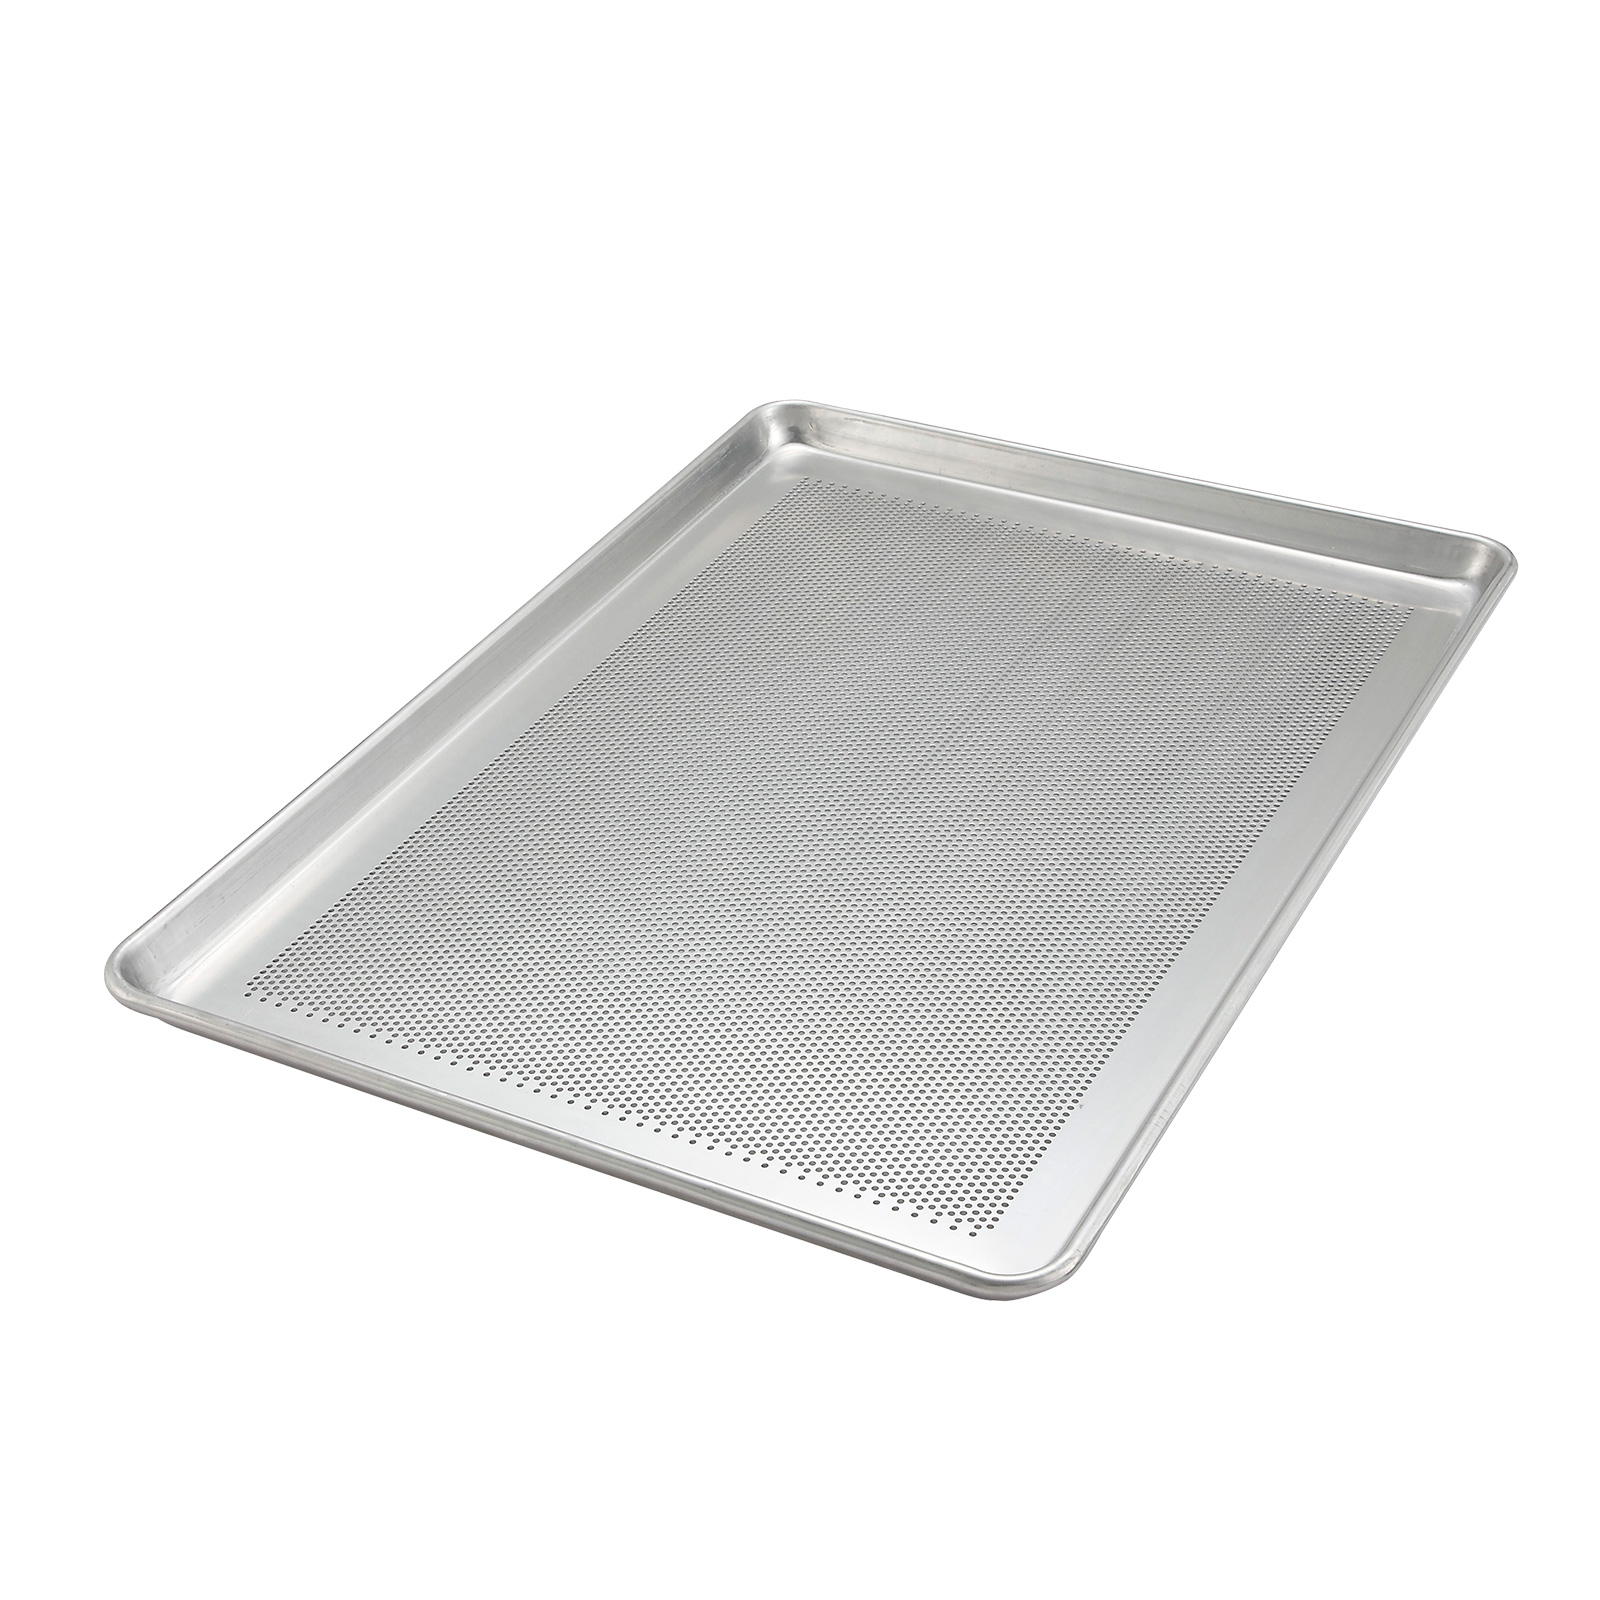 Winco ALXP-1826P bun / sheet pan